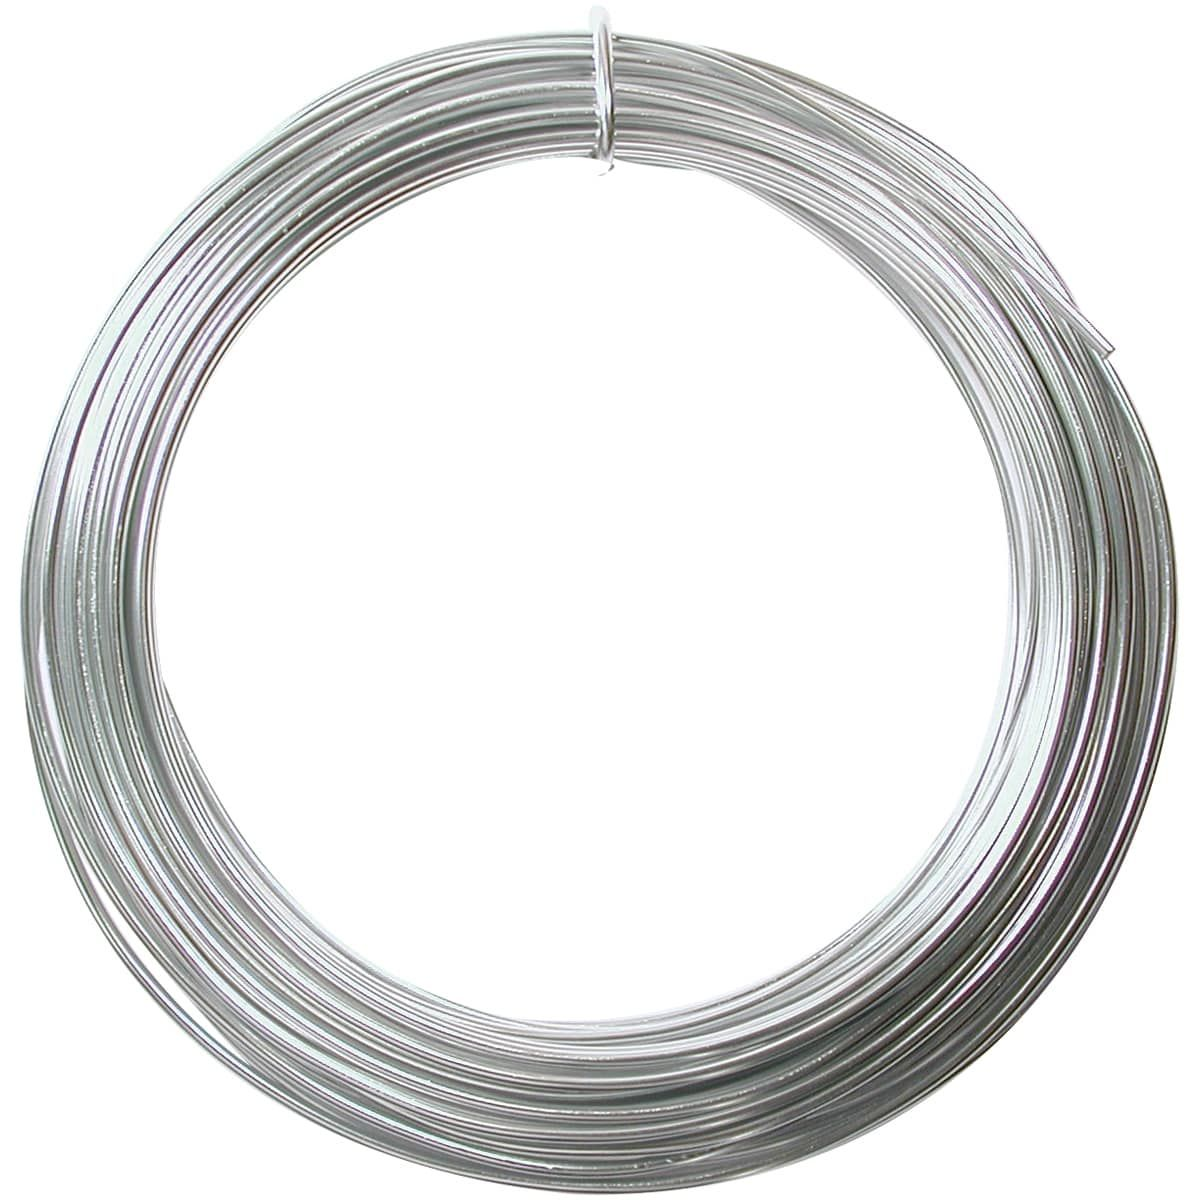 Beadsmith Aluminum Wire 12 Gauge 39\' Coil-Silver - Silver | Gauges ...